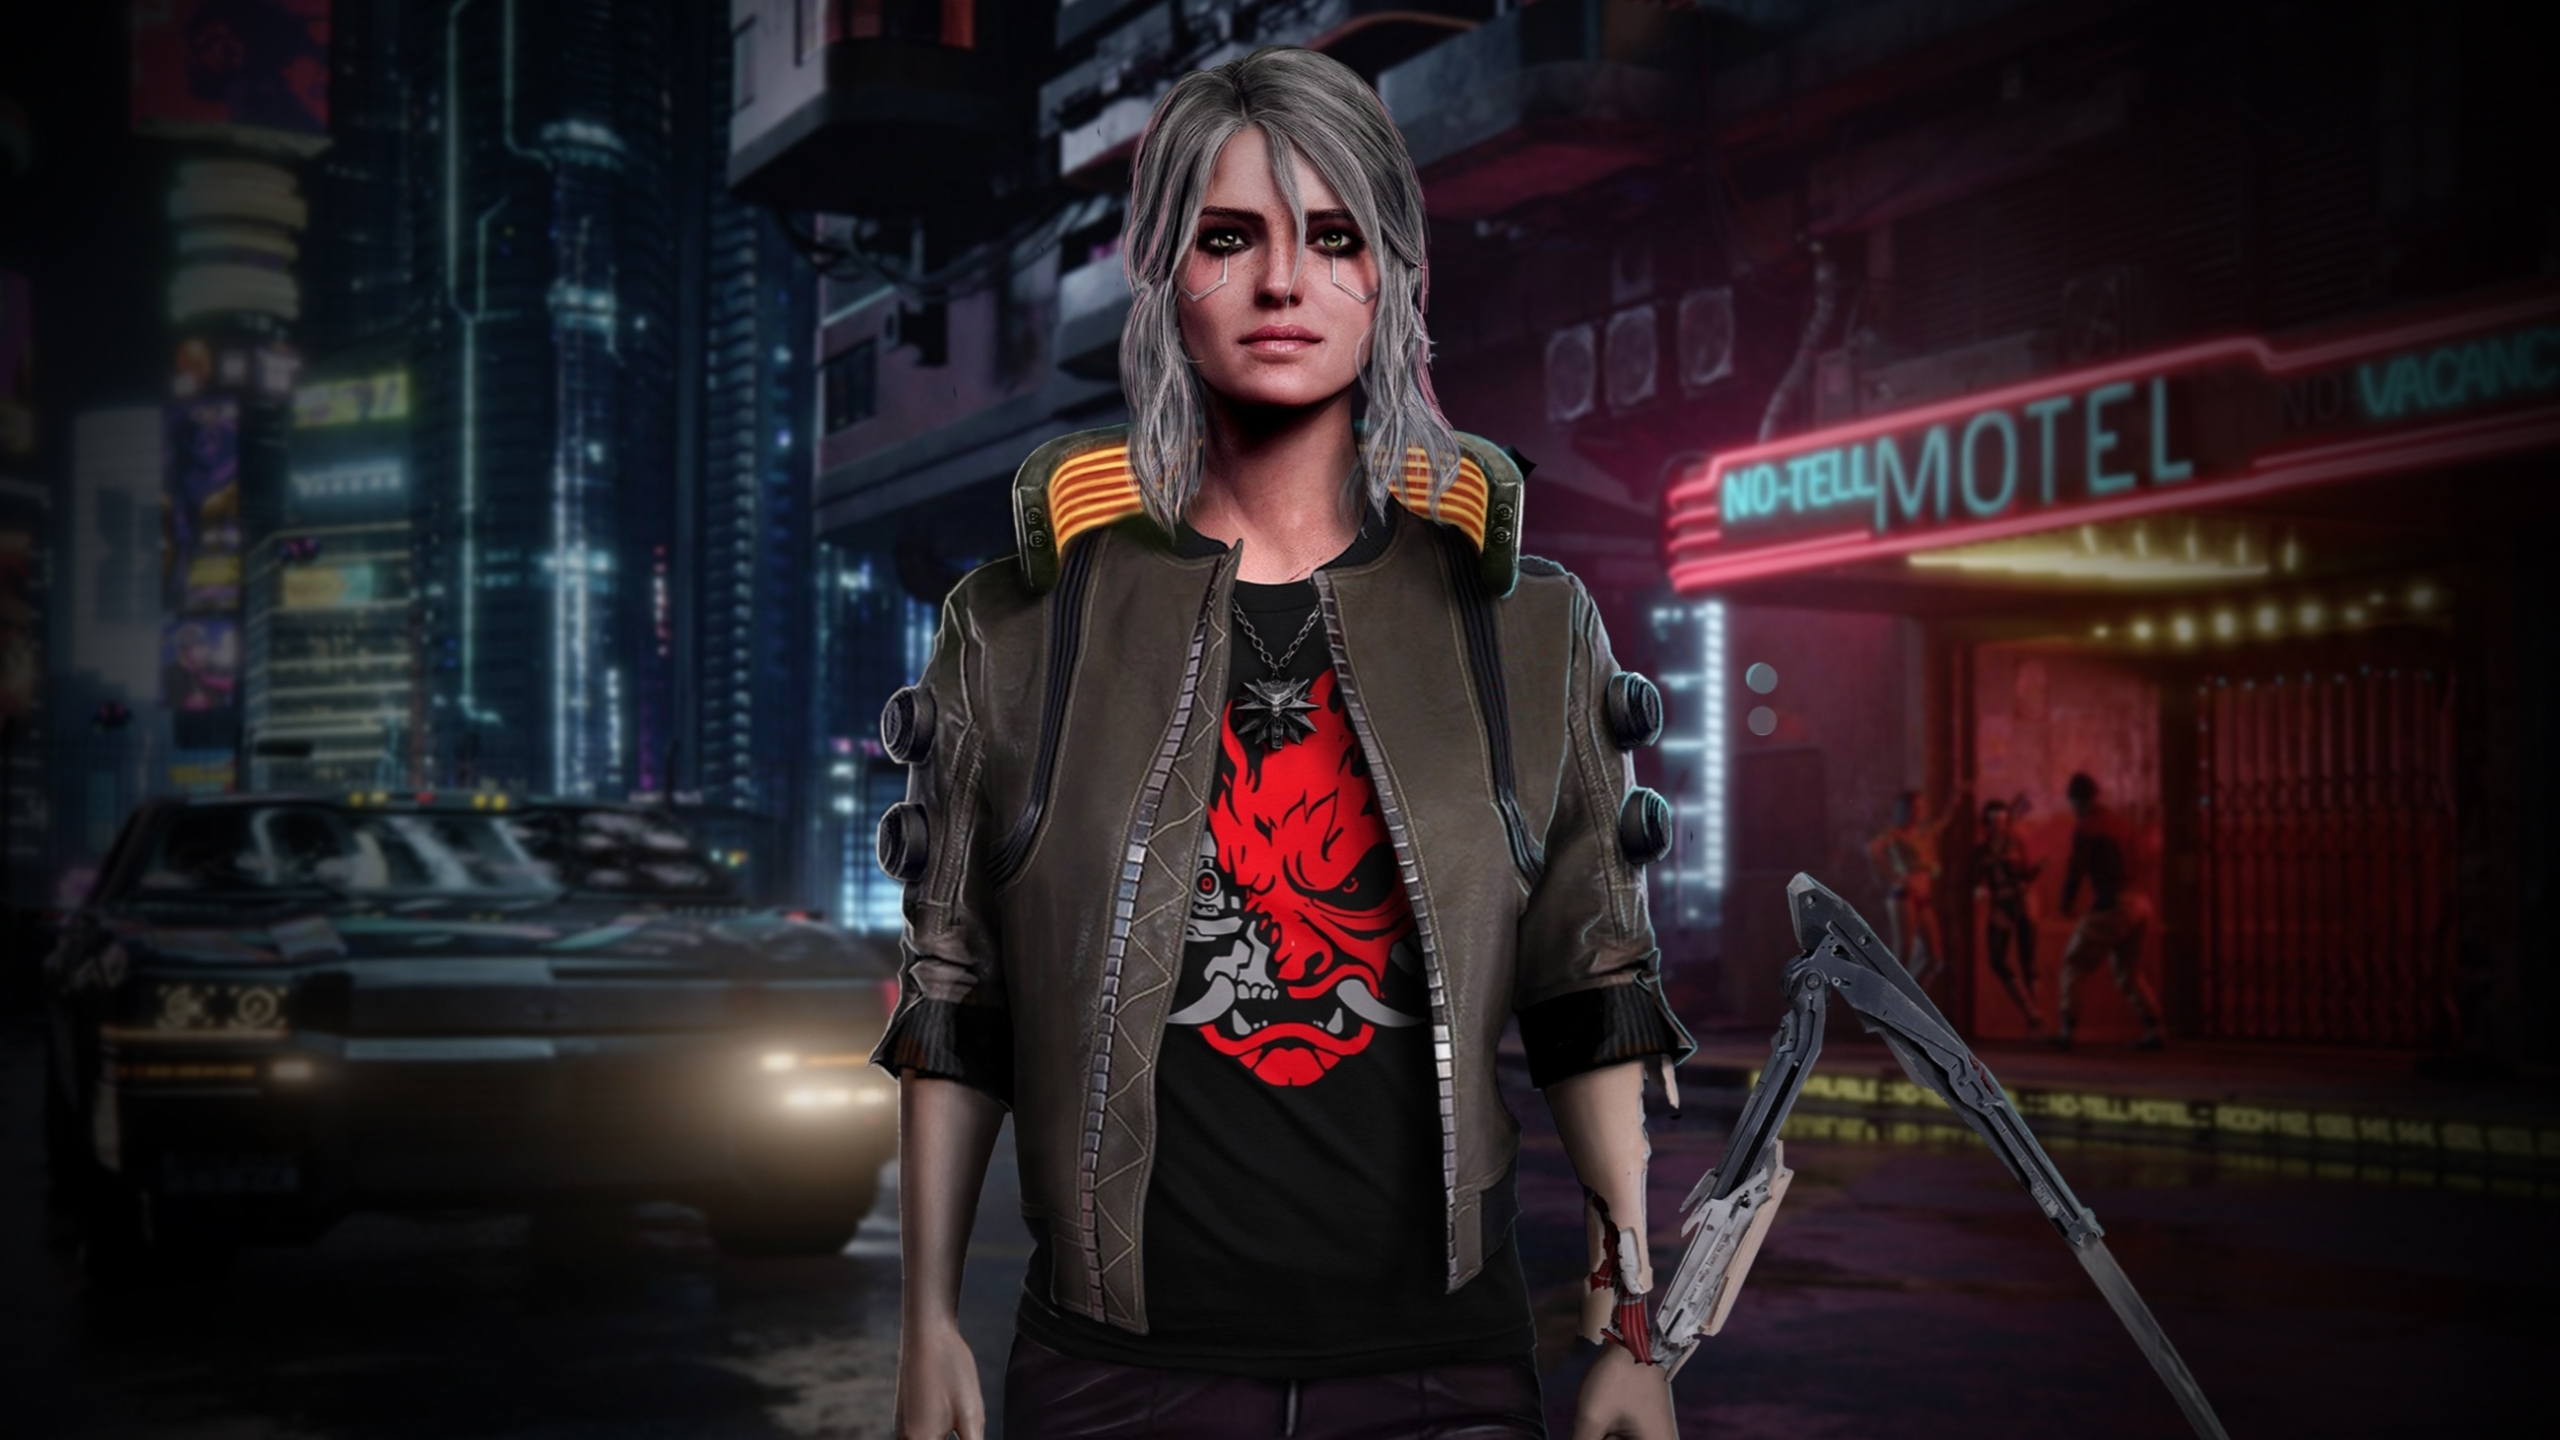 2560x1440 Ciri Witcher X Cyberpunk 2077 1440p Resolution Wallpaper Hd Games 4k Wallpapers Images Photos And Background